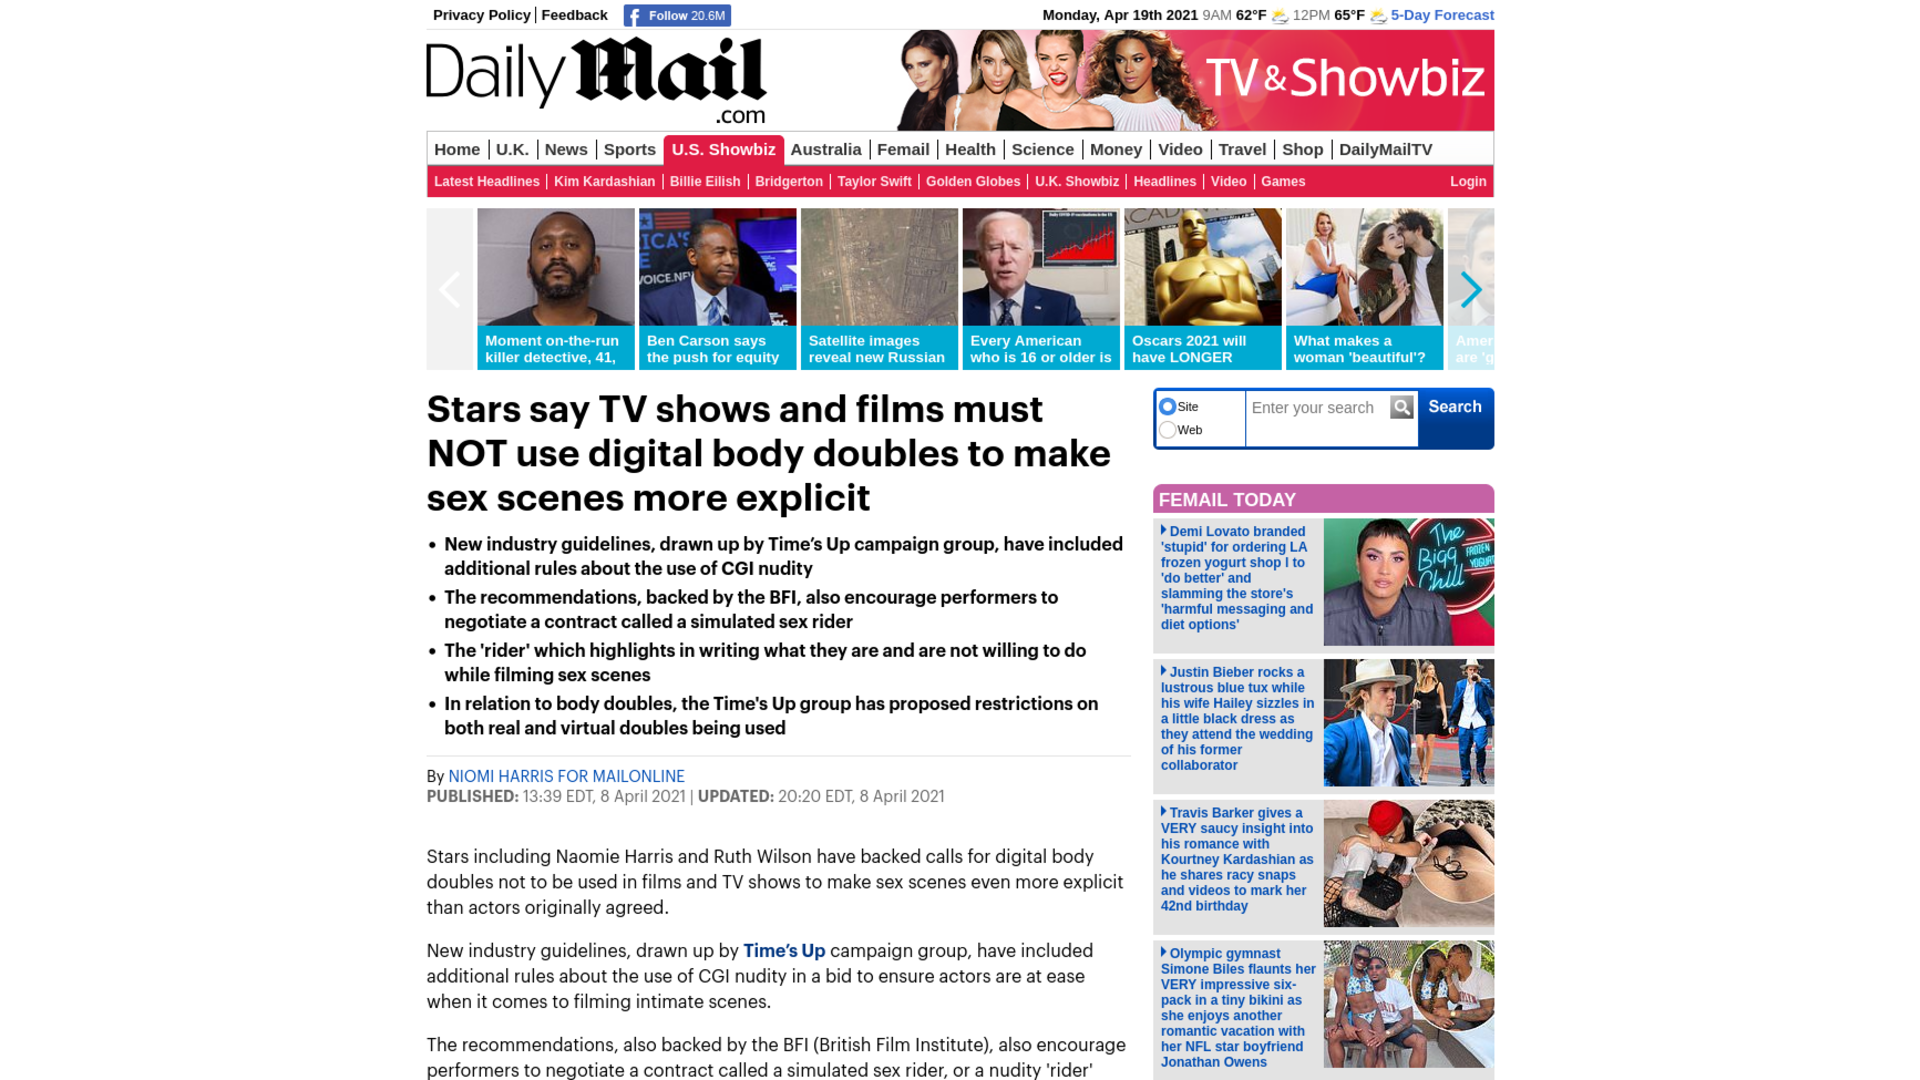 Fairness Rocks News Stars say TV shows and films must NOT use digital body doubles to make sex scenes more explicit